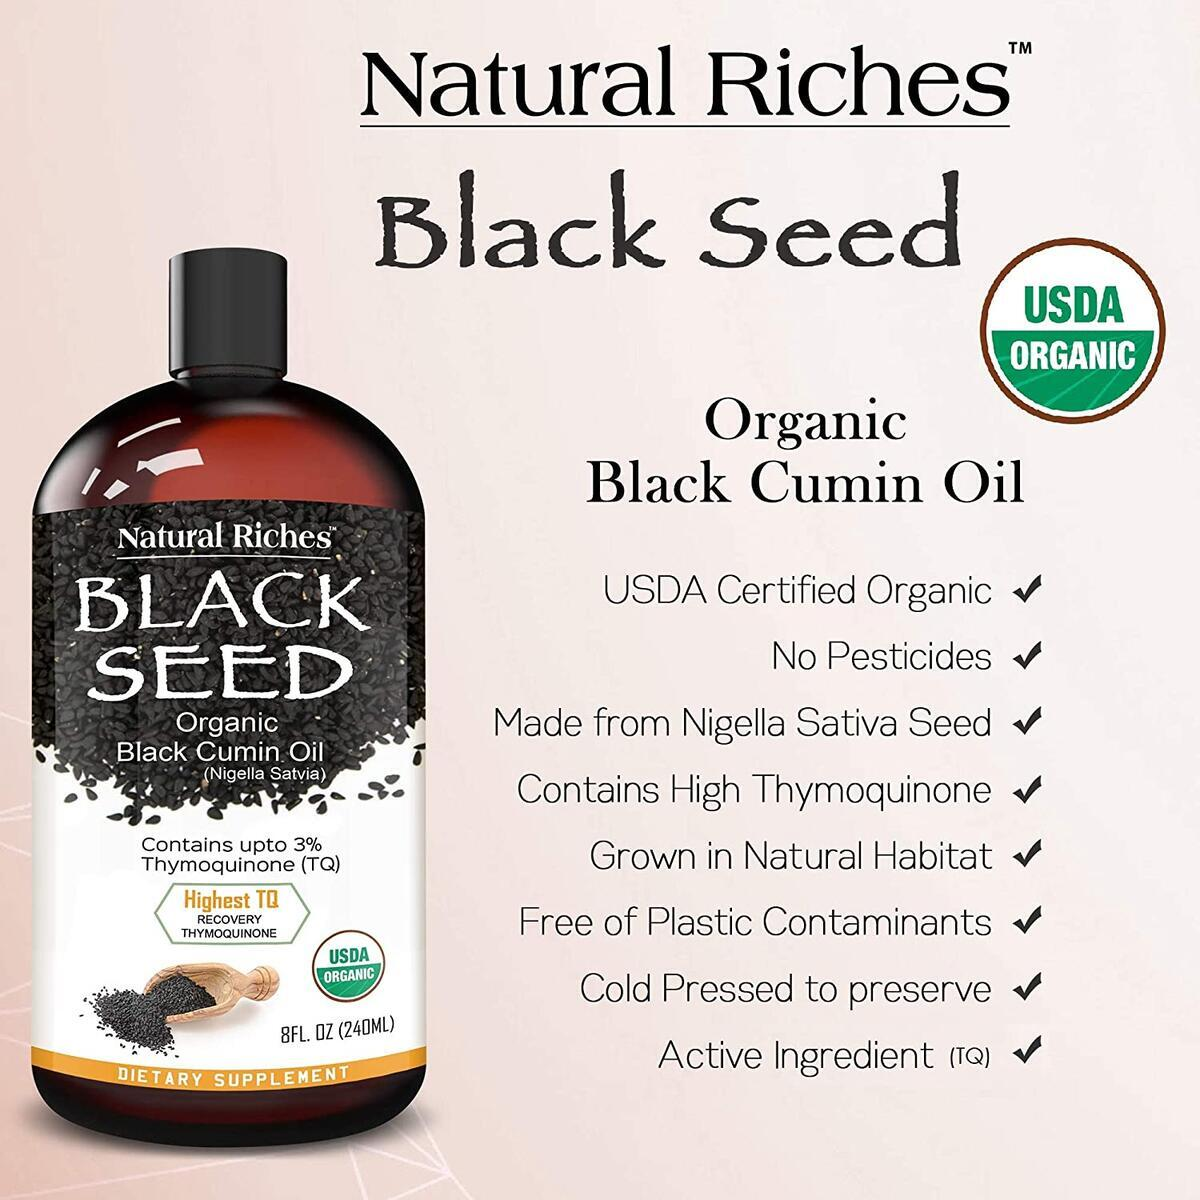 New Natural Riches Pure USDA Organic Certified Premium Black Cumin Seed Oil. GLASS BOTTLE - Nigella Sativa Undiluted, Cold Pressed, No Solvents, Vegan -8 oz…